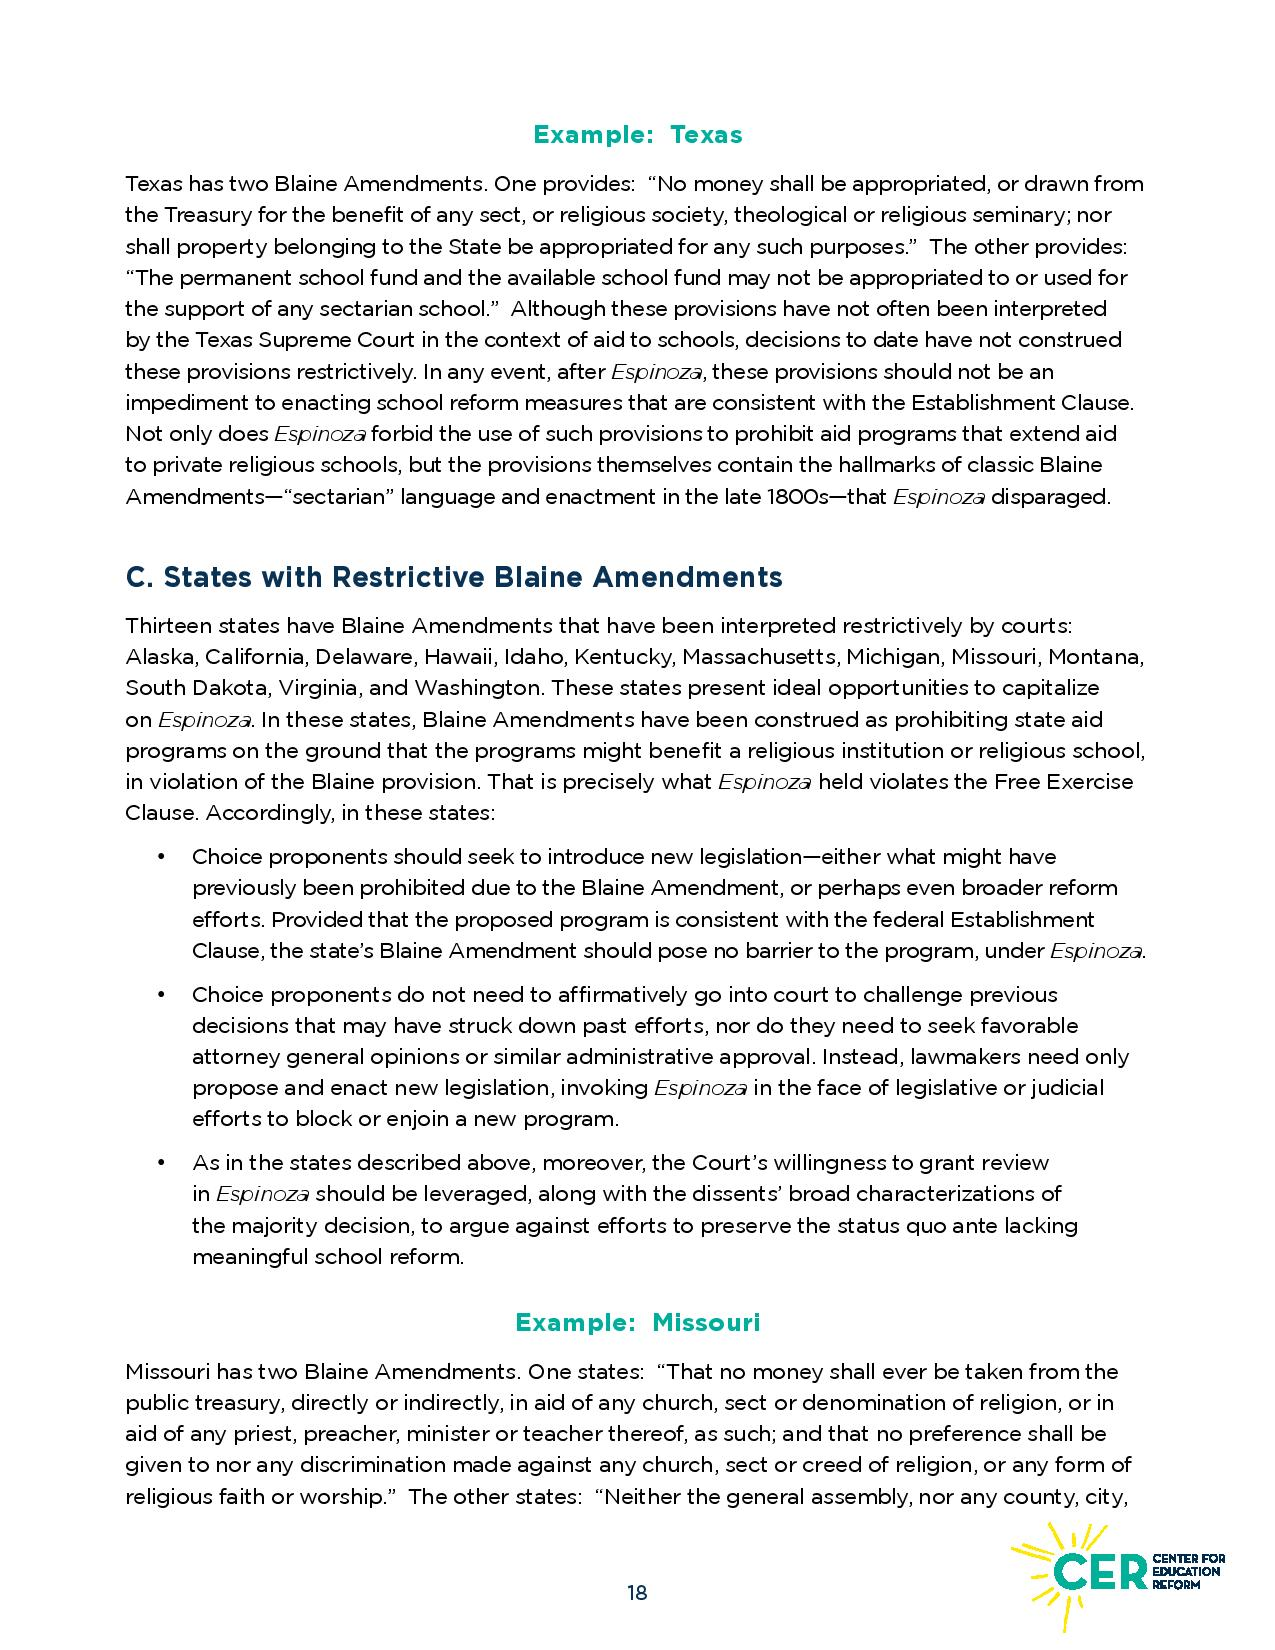 CER_Whitepaper_Blaine-page-018